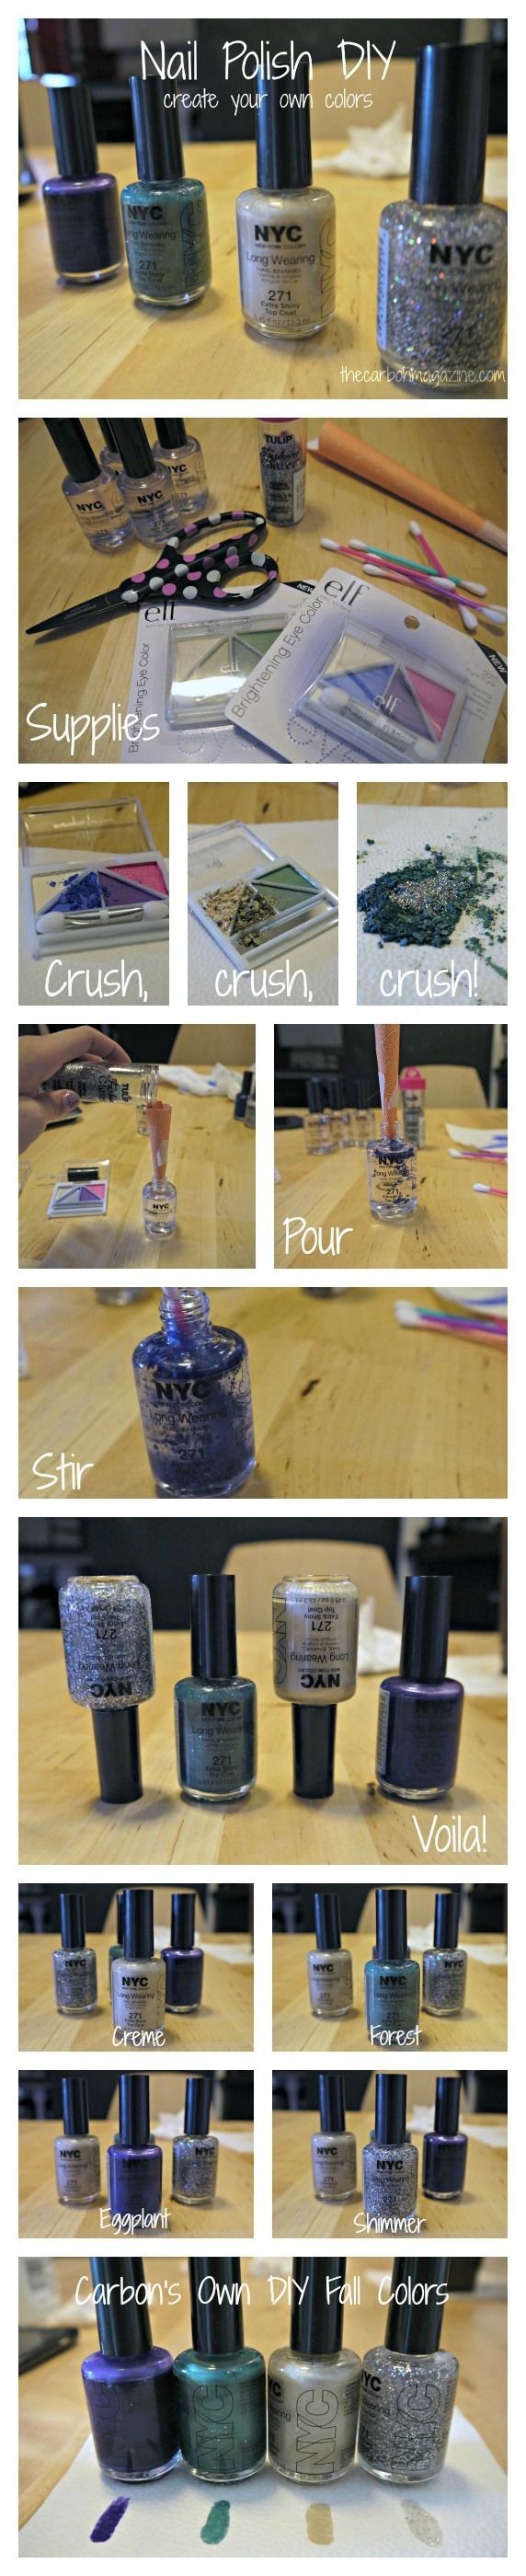 Turn your old eyeshadow to nail polish! Such a fun and easy DIY to do. Can create custom colors by this method too!